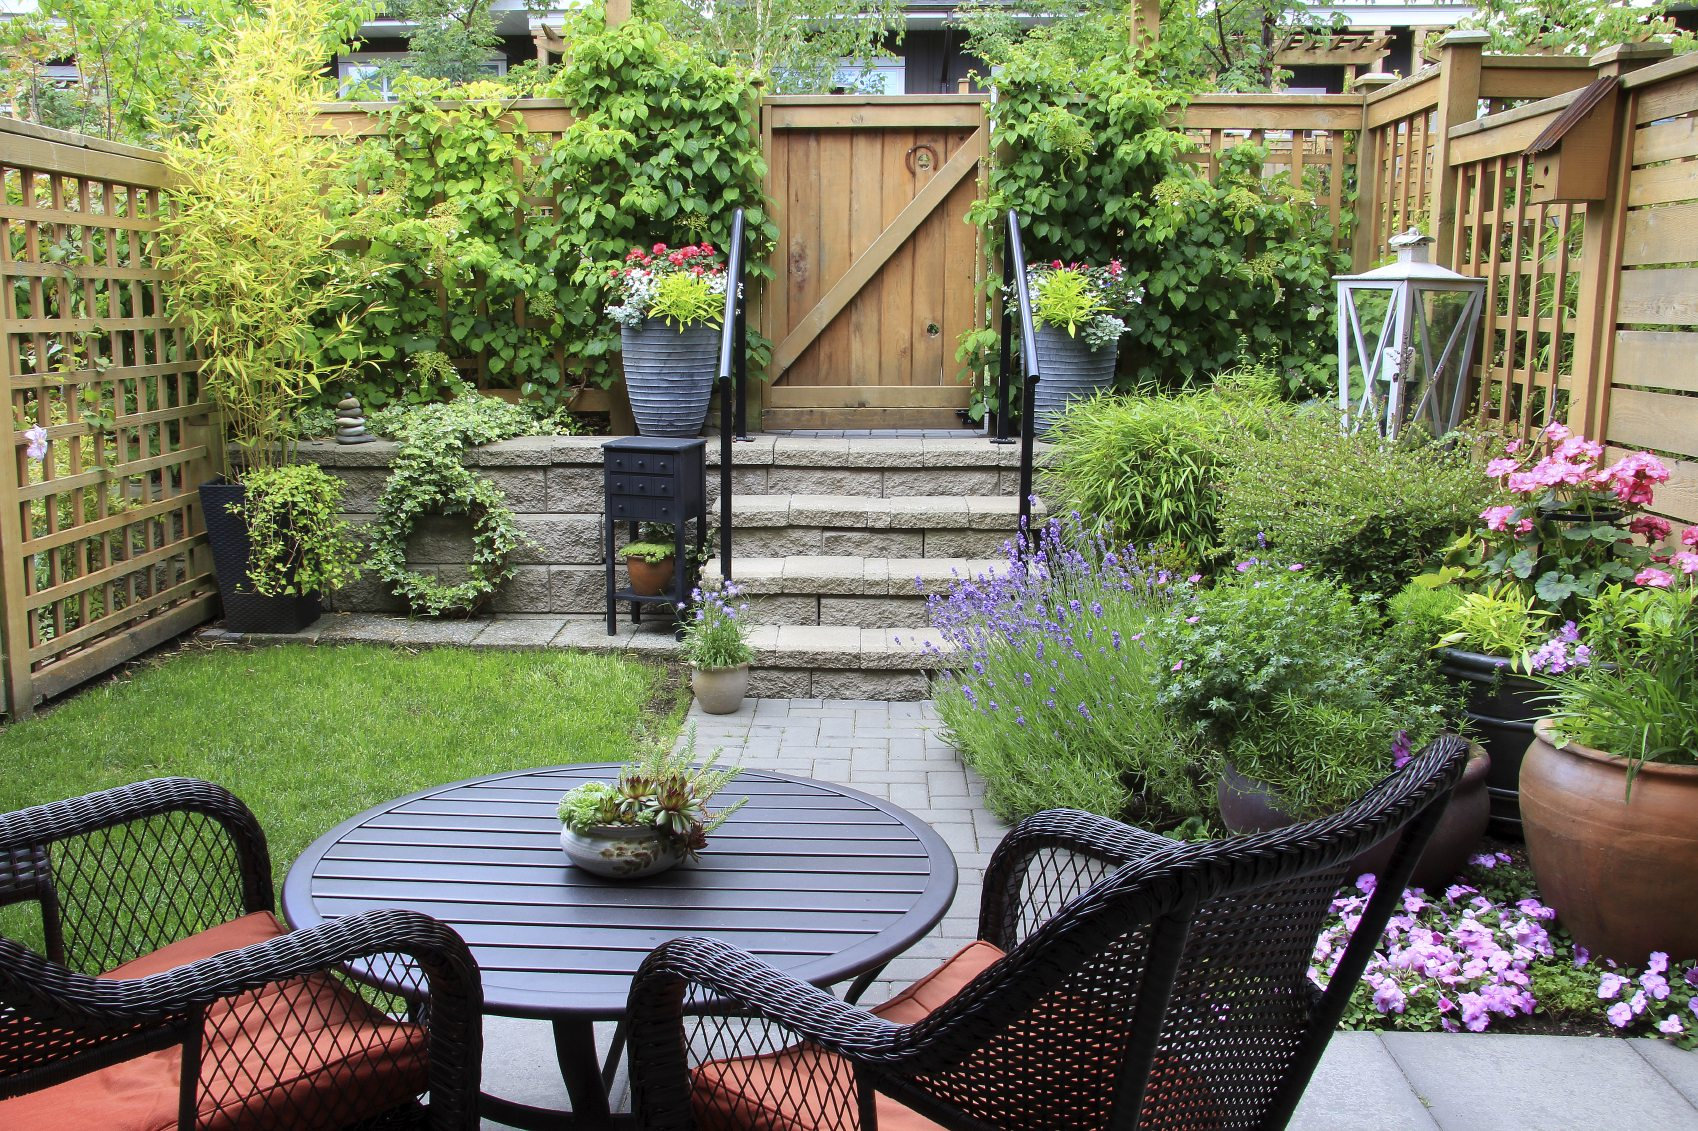 Creating A Small Garden Space - How To Make A Garden With Little Space